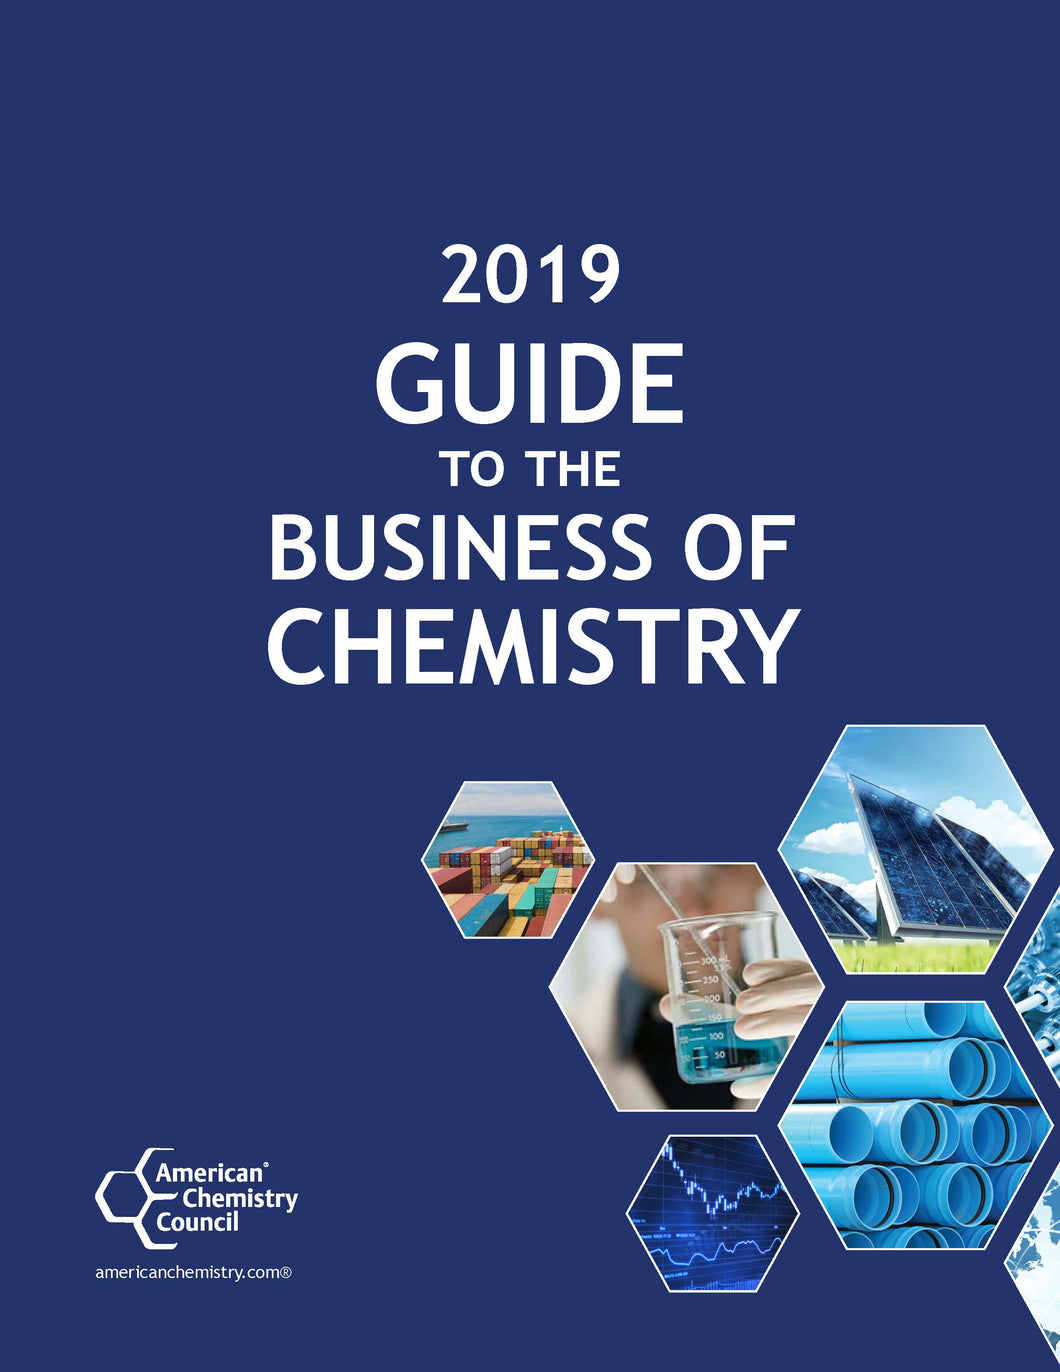 Guide to the Business of Chemistry - 2019 (hard copy version)